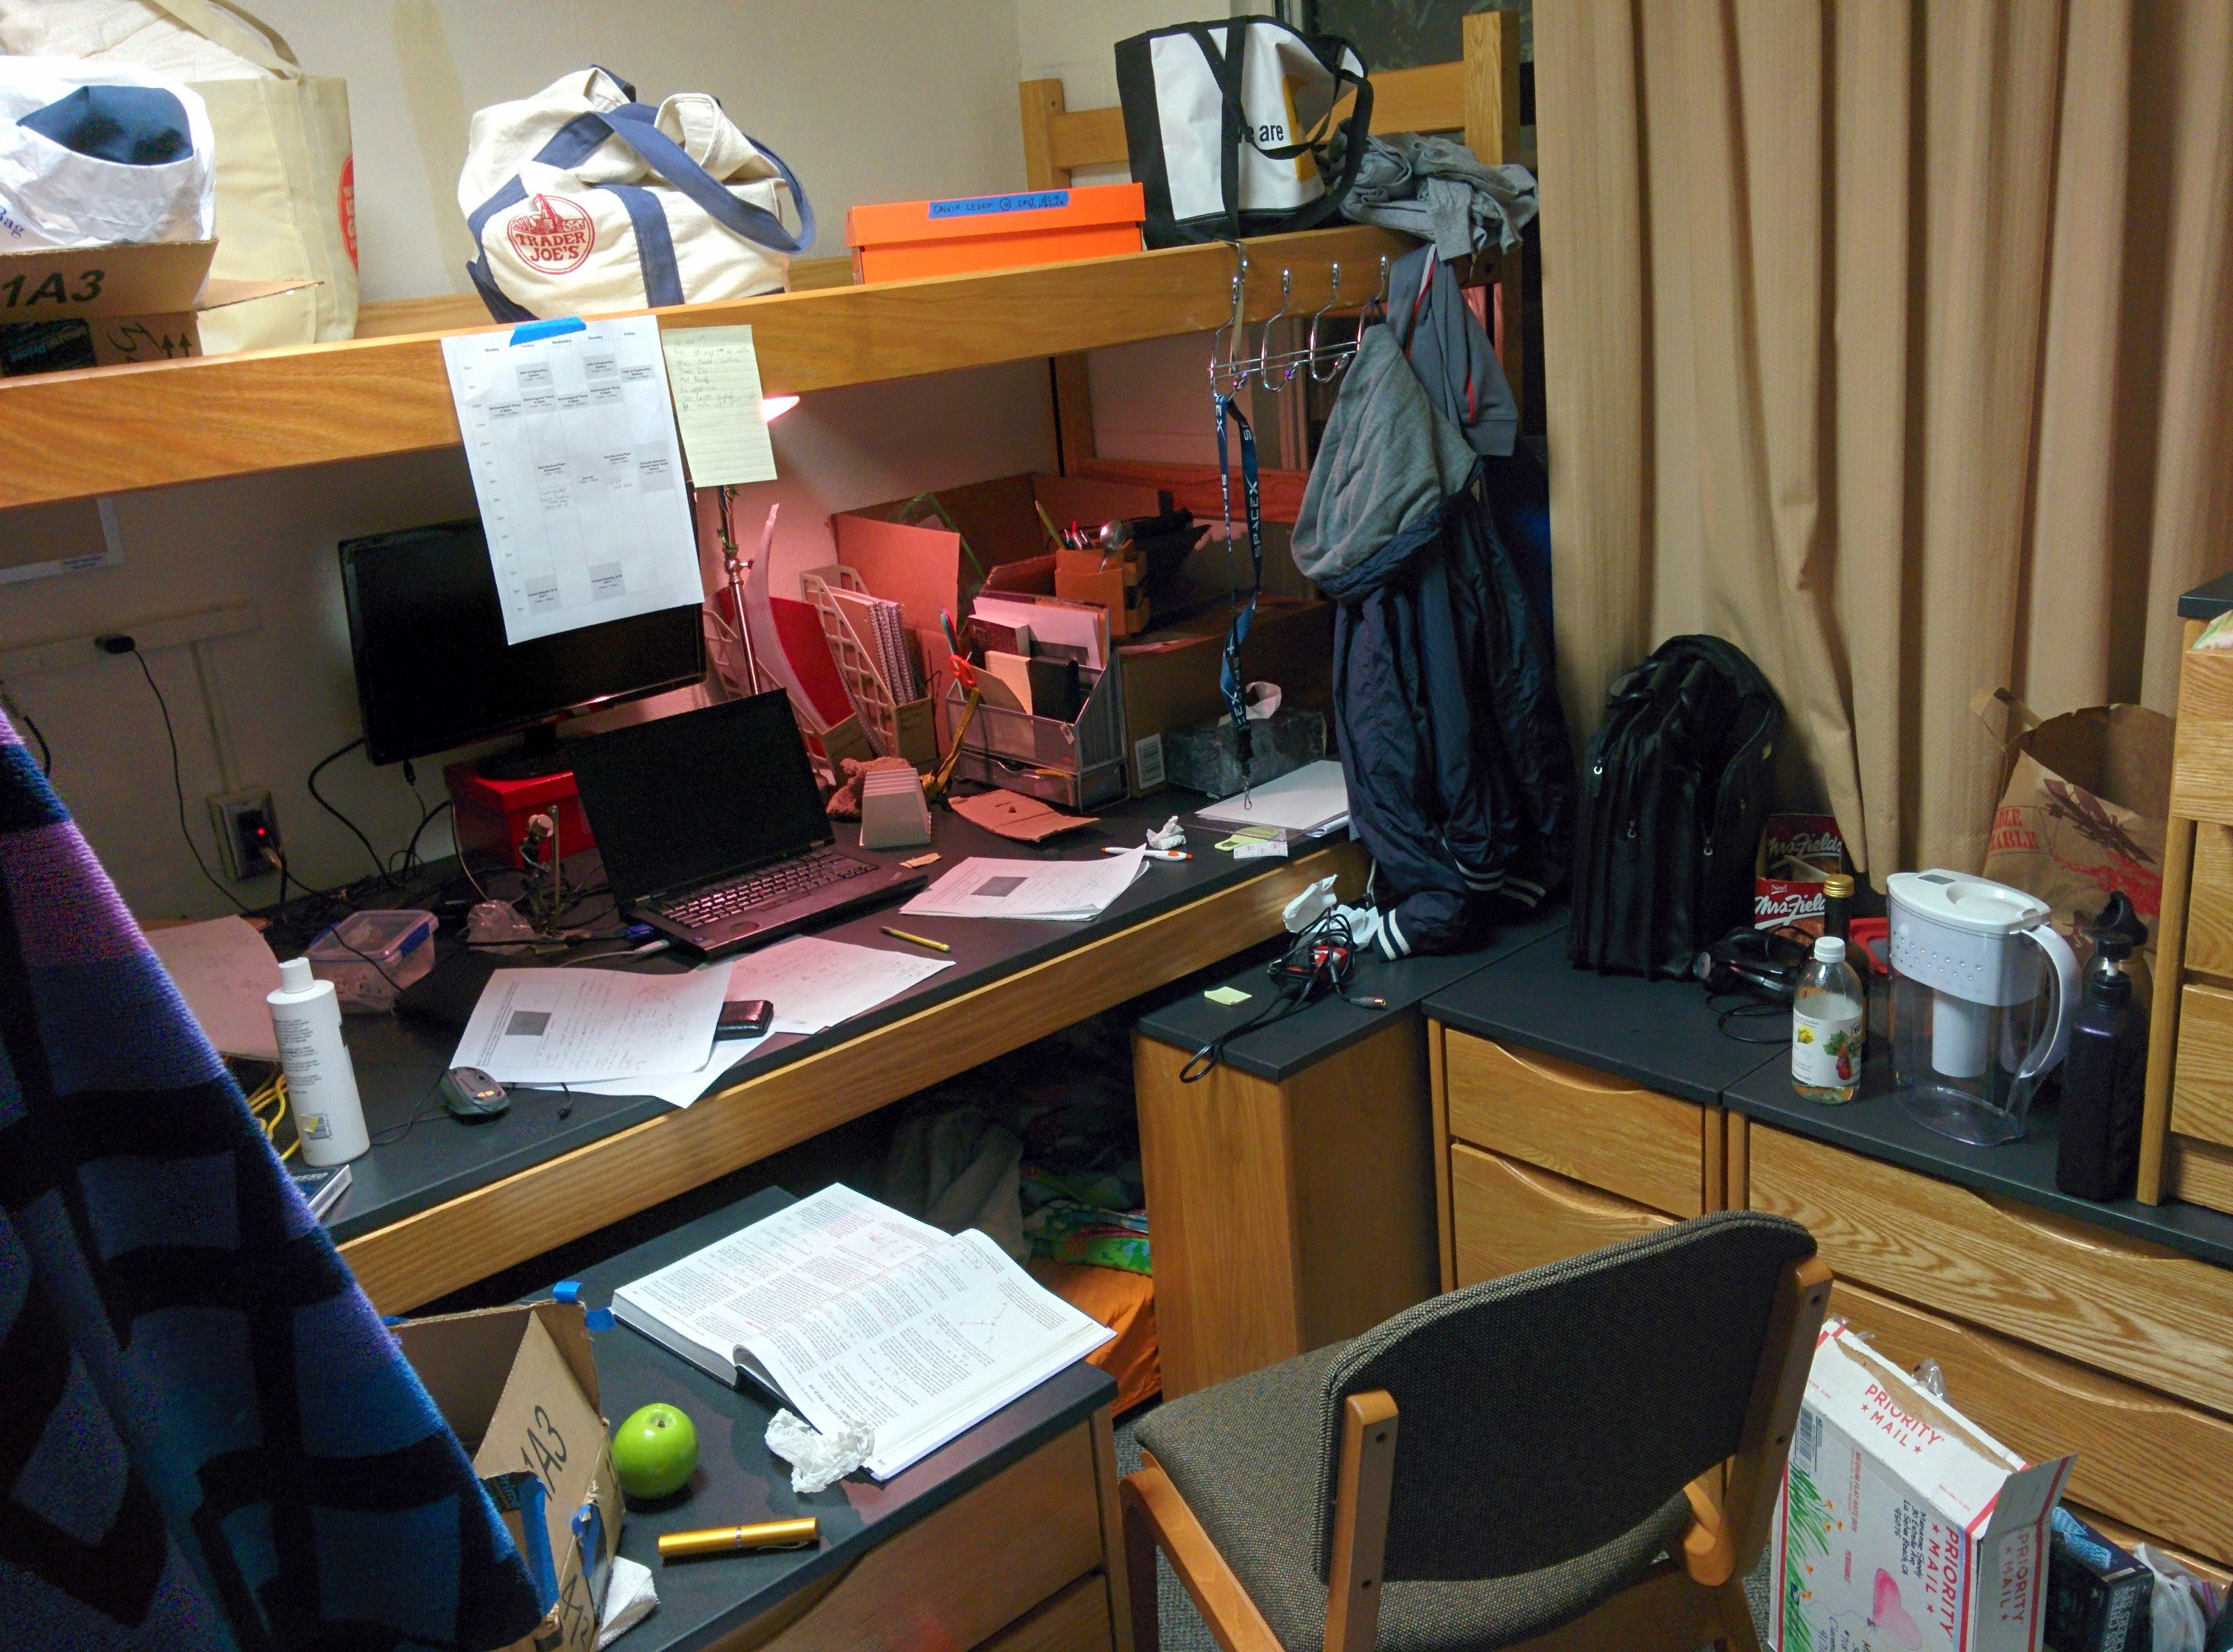 living in the dorm essay Free essay: living in a dorm or living at home have you ever enjoyed the whole sleepless night in a dorm with your friends students in dorms can do.